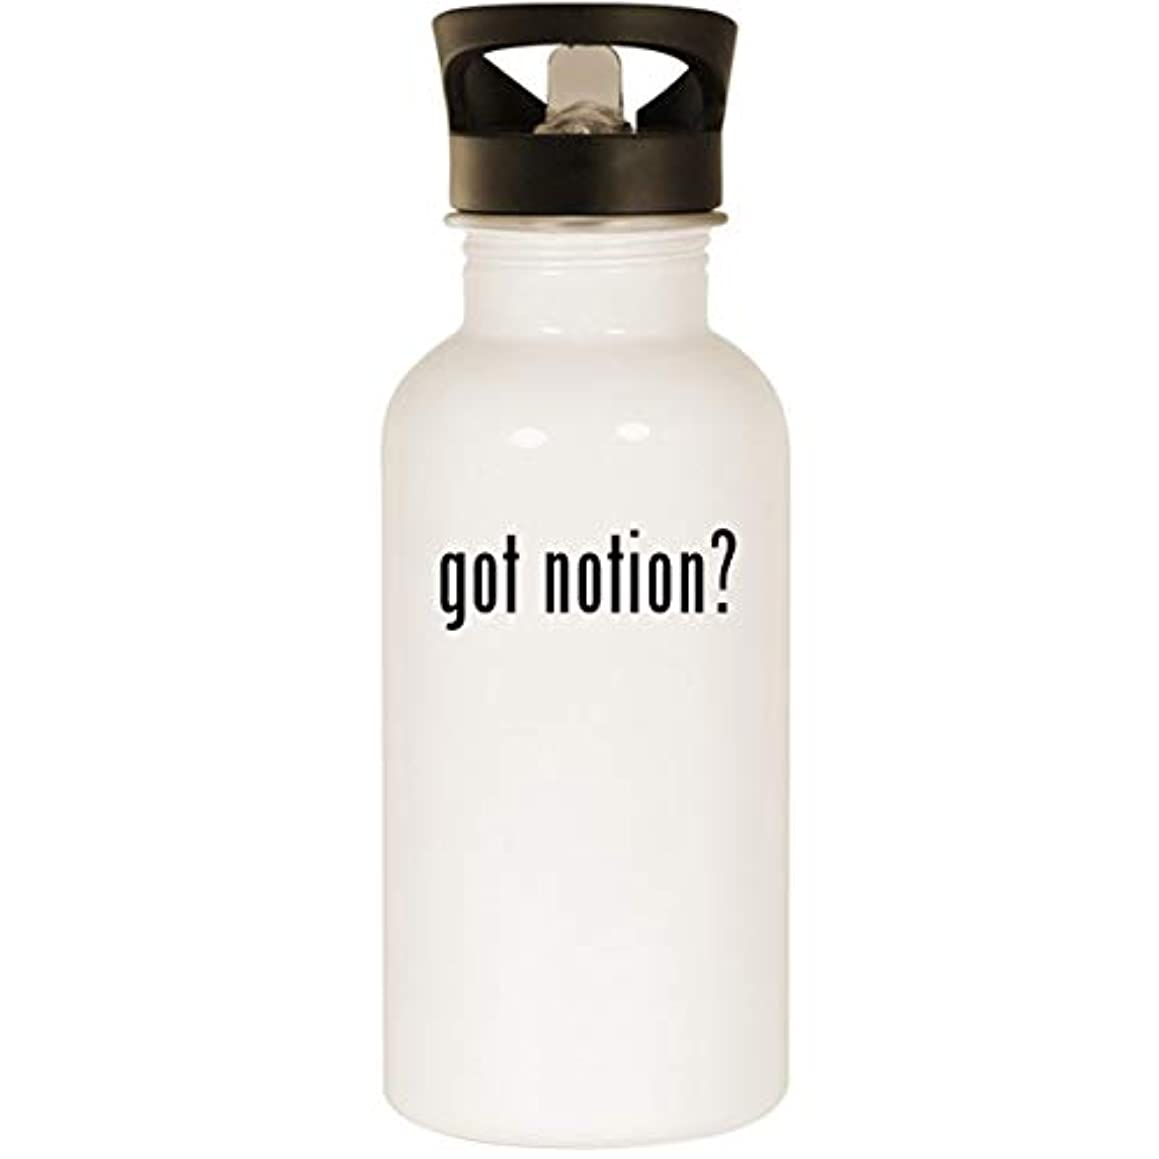 got notion? - Stainless Steel 20oz Road Ready Water Bottle, White